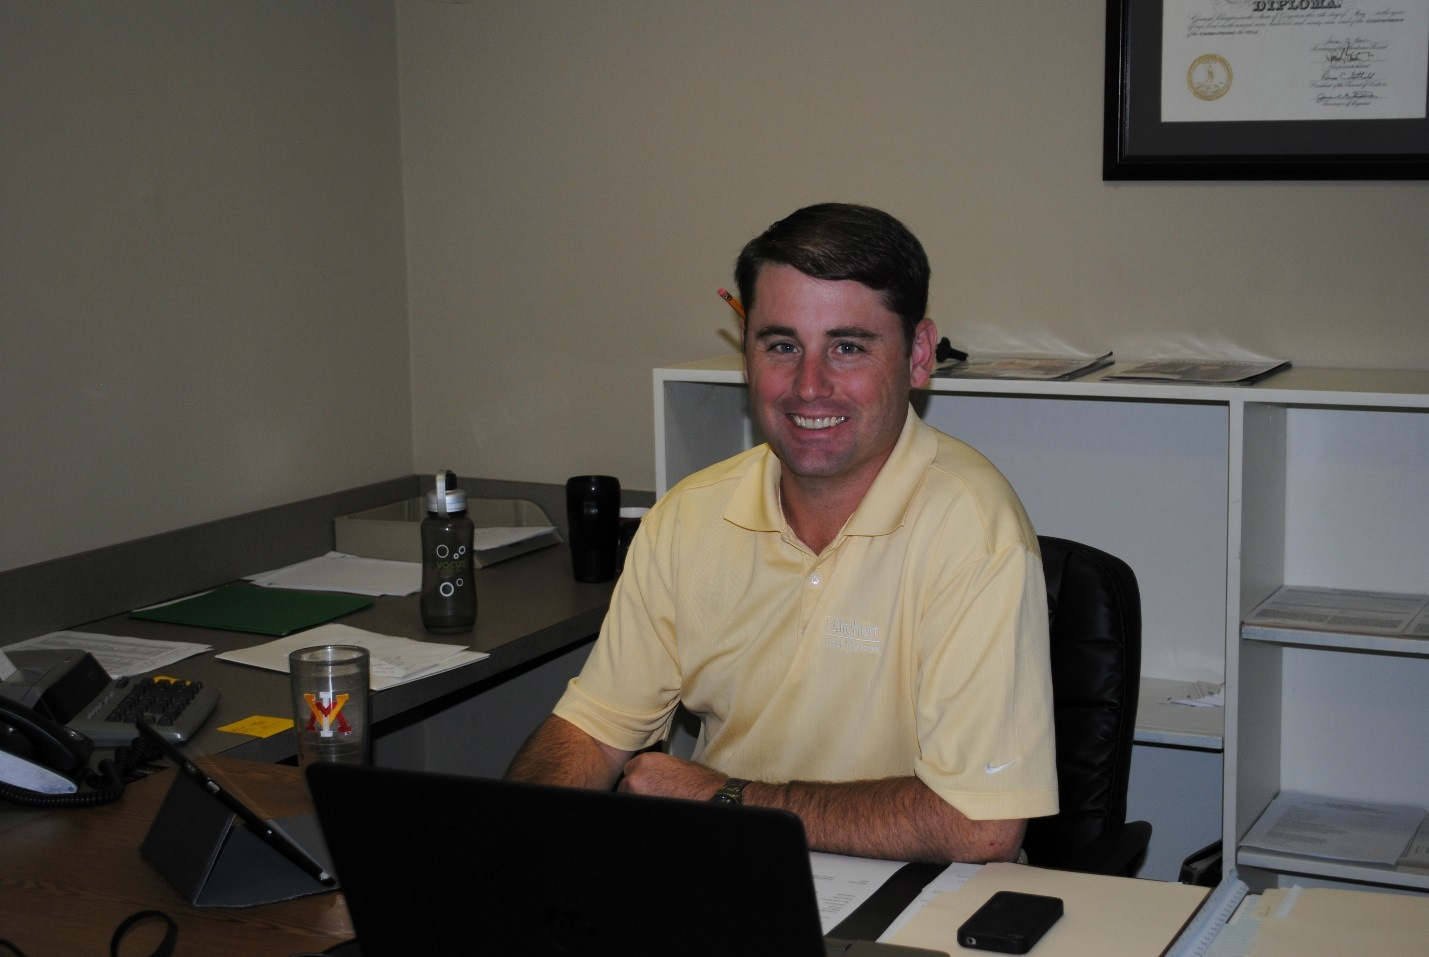 Jake Hughes/Sales Consultant/Staff/Hatchett/Design/Remodel/Virginia Beach